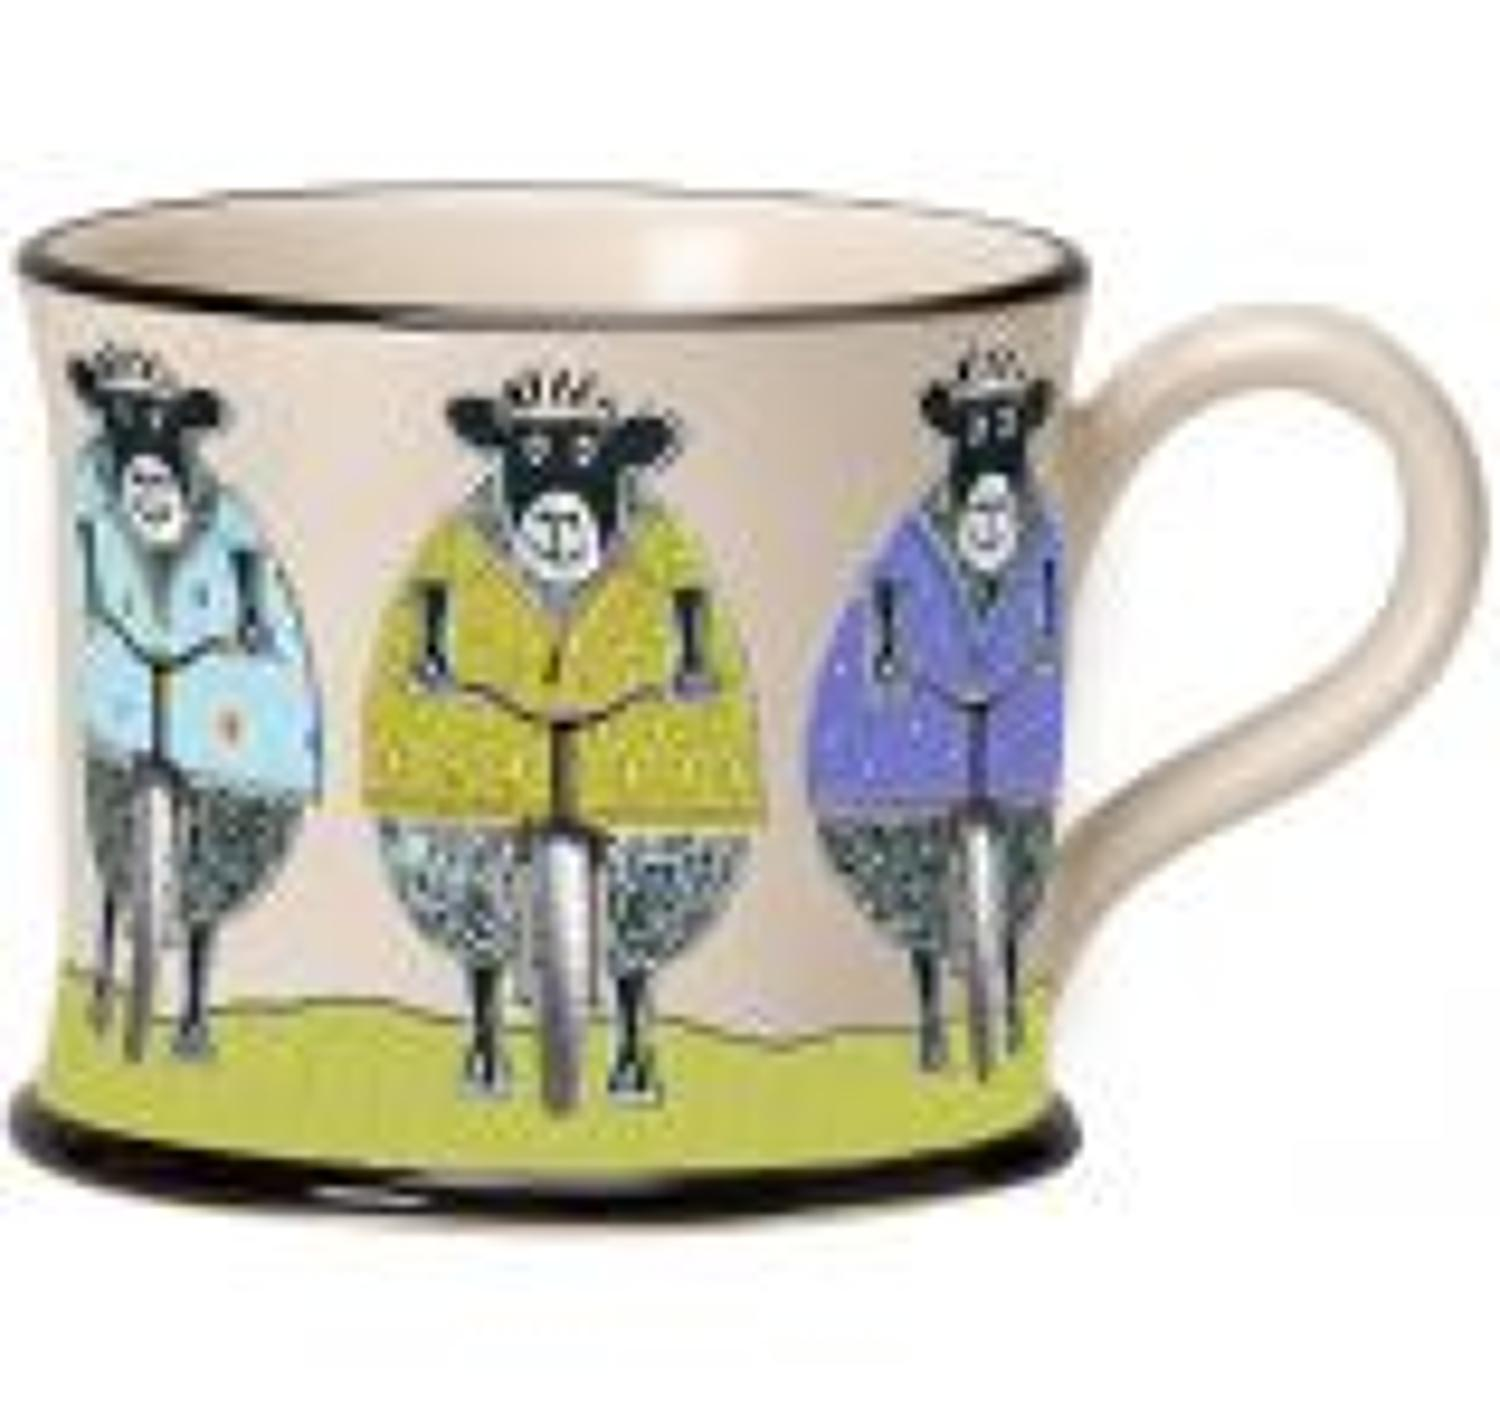 Moorland Pottery - Mug - The woolly bikers